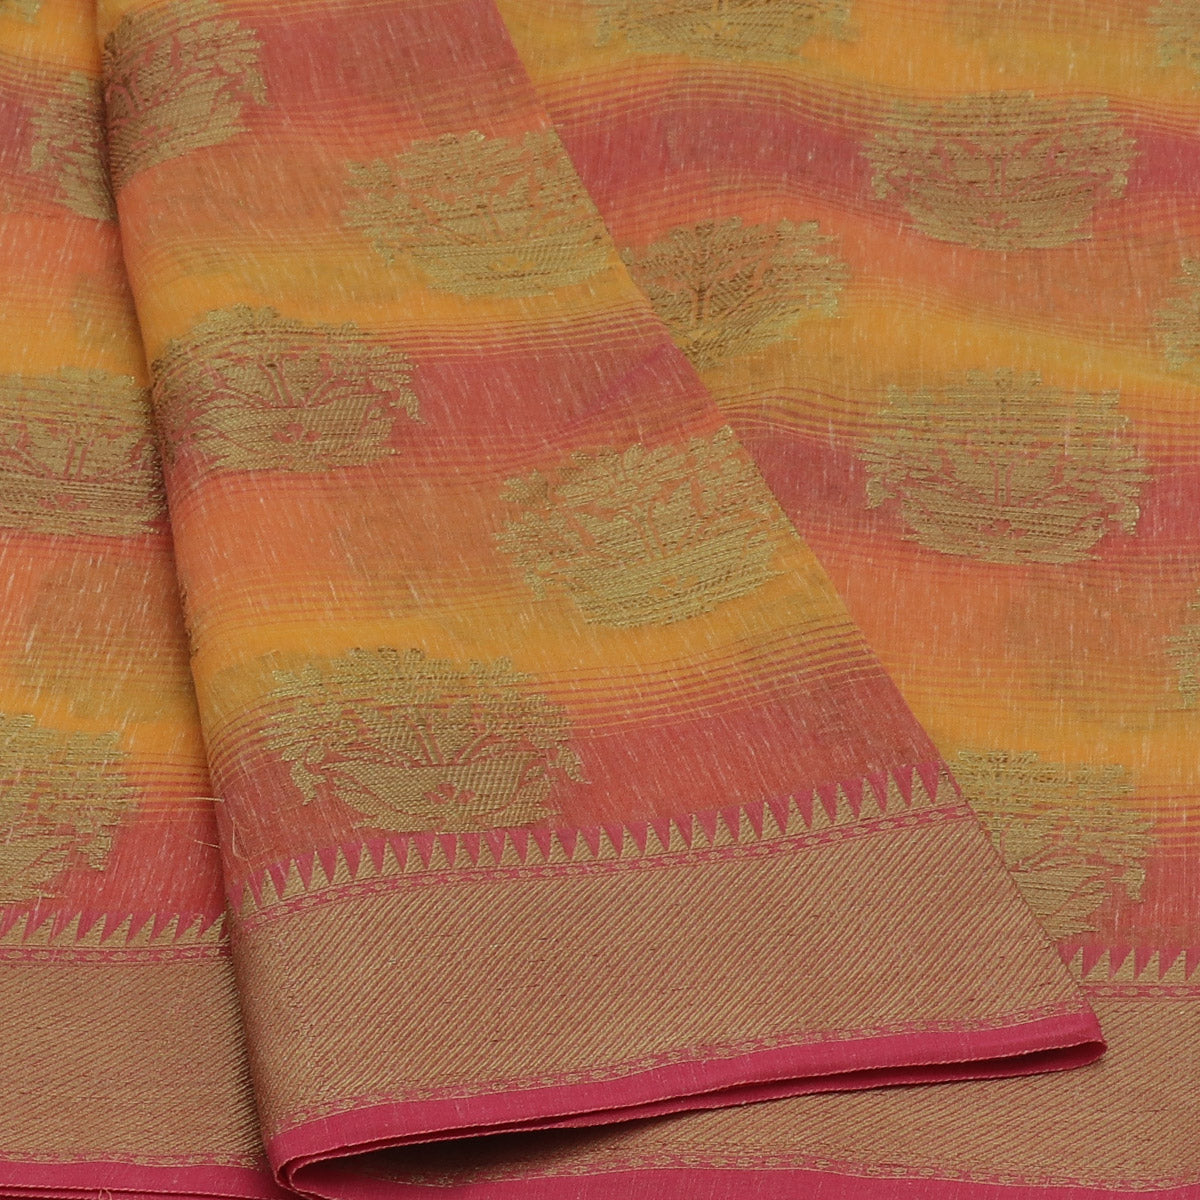 Jute Linen with Banarasi Zari Saree Orange and Pink with Temple border